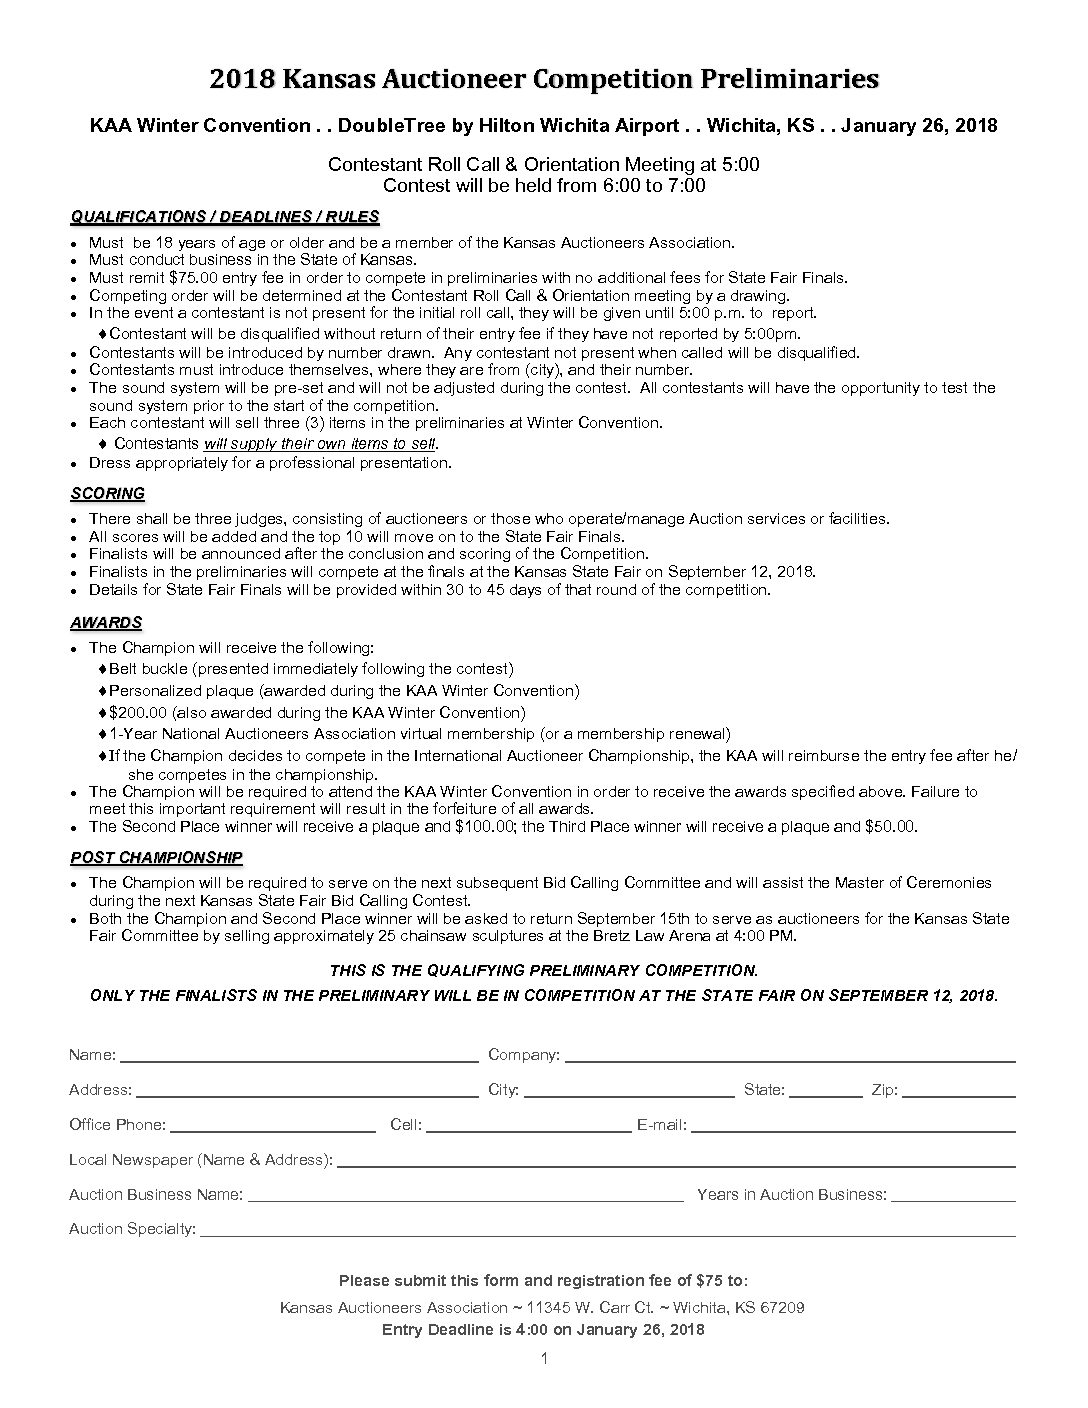 2018_KAC_Registration_Form